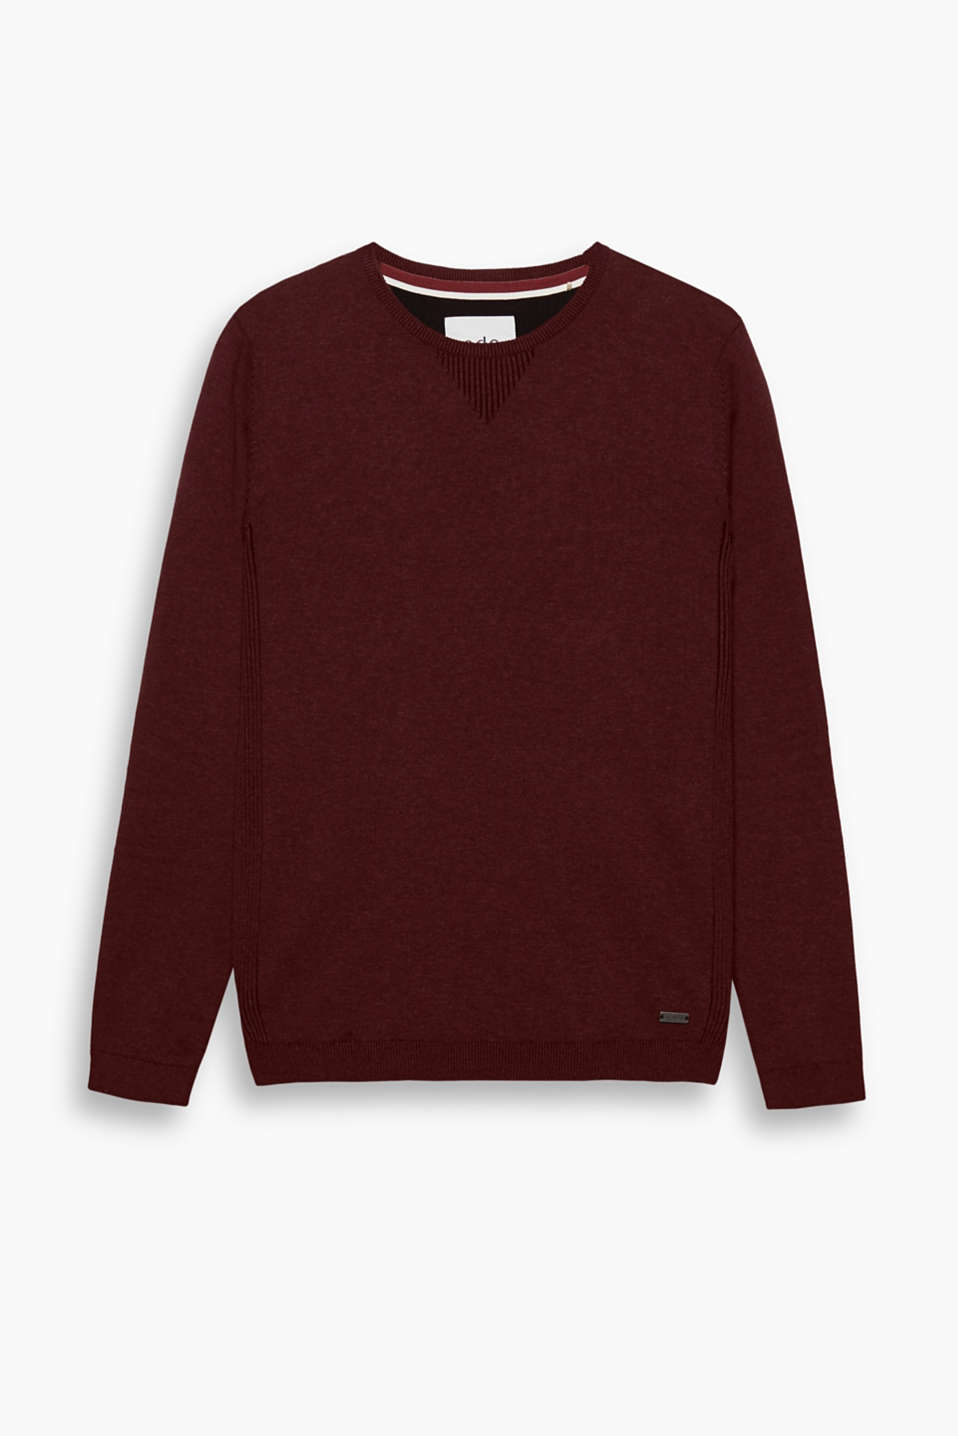 The melange two-tone look makes this fine knit jumper a timeless, sporty companion.